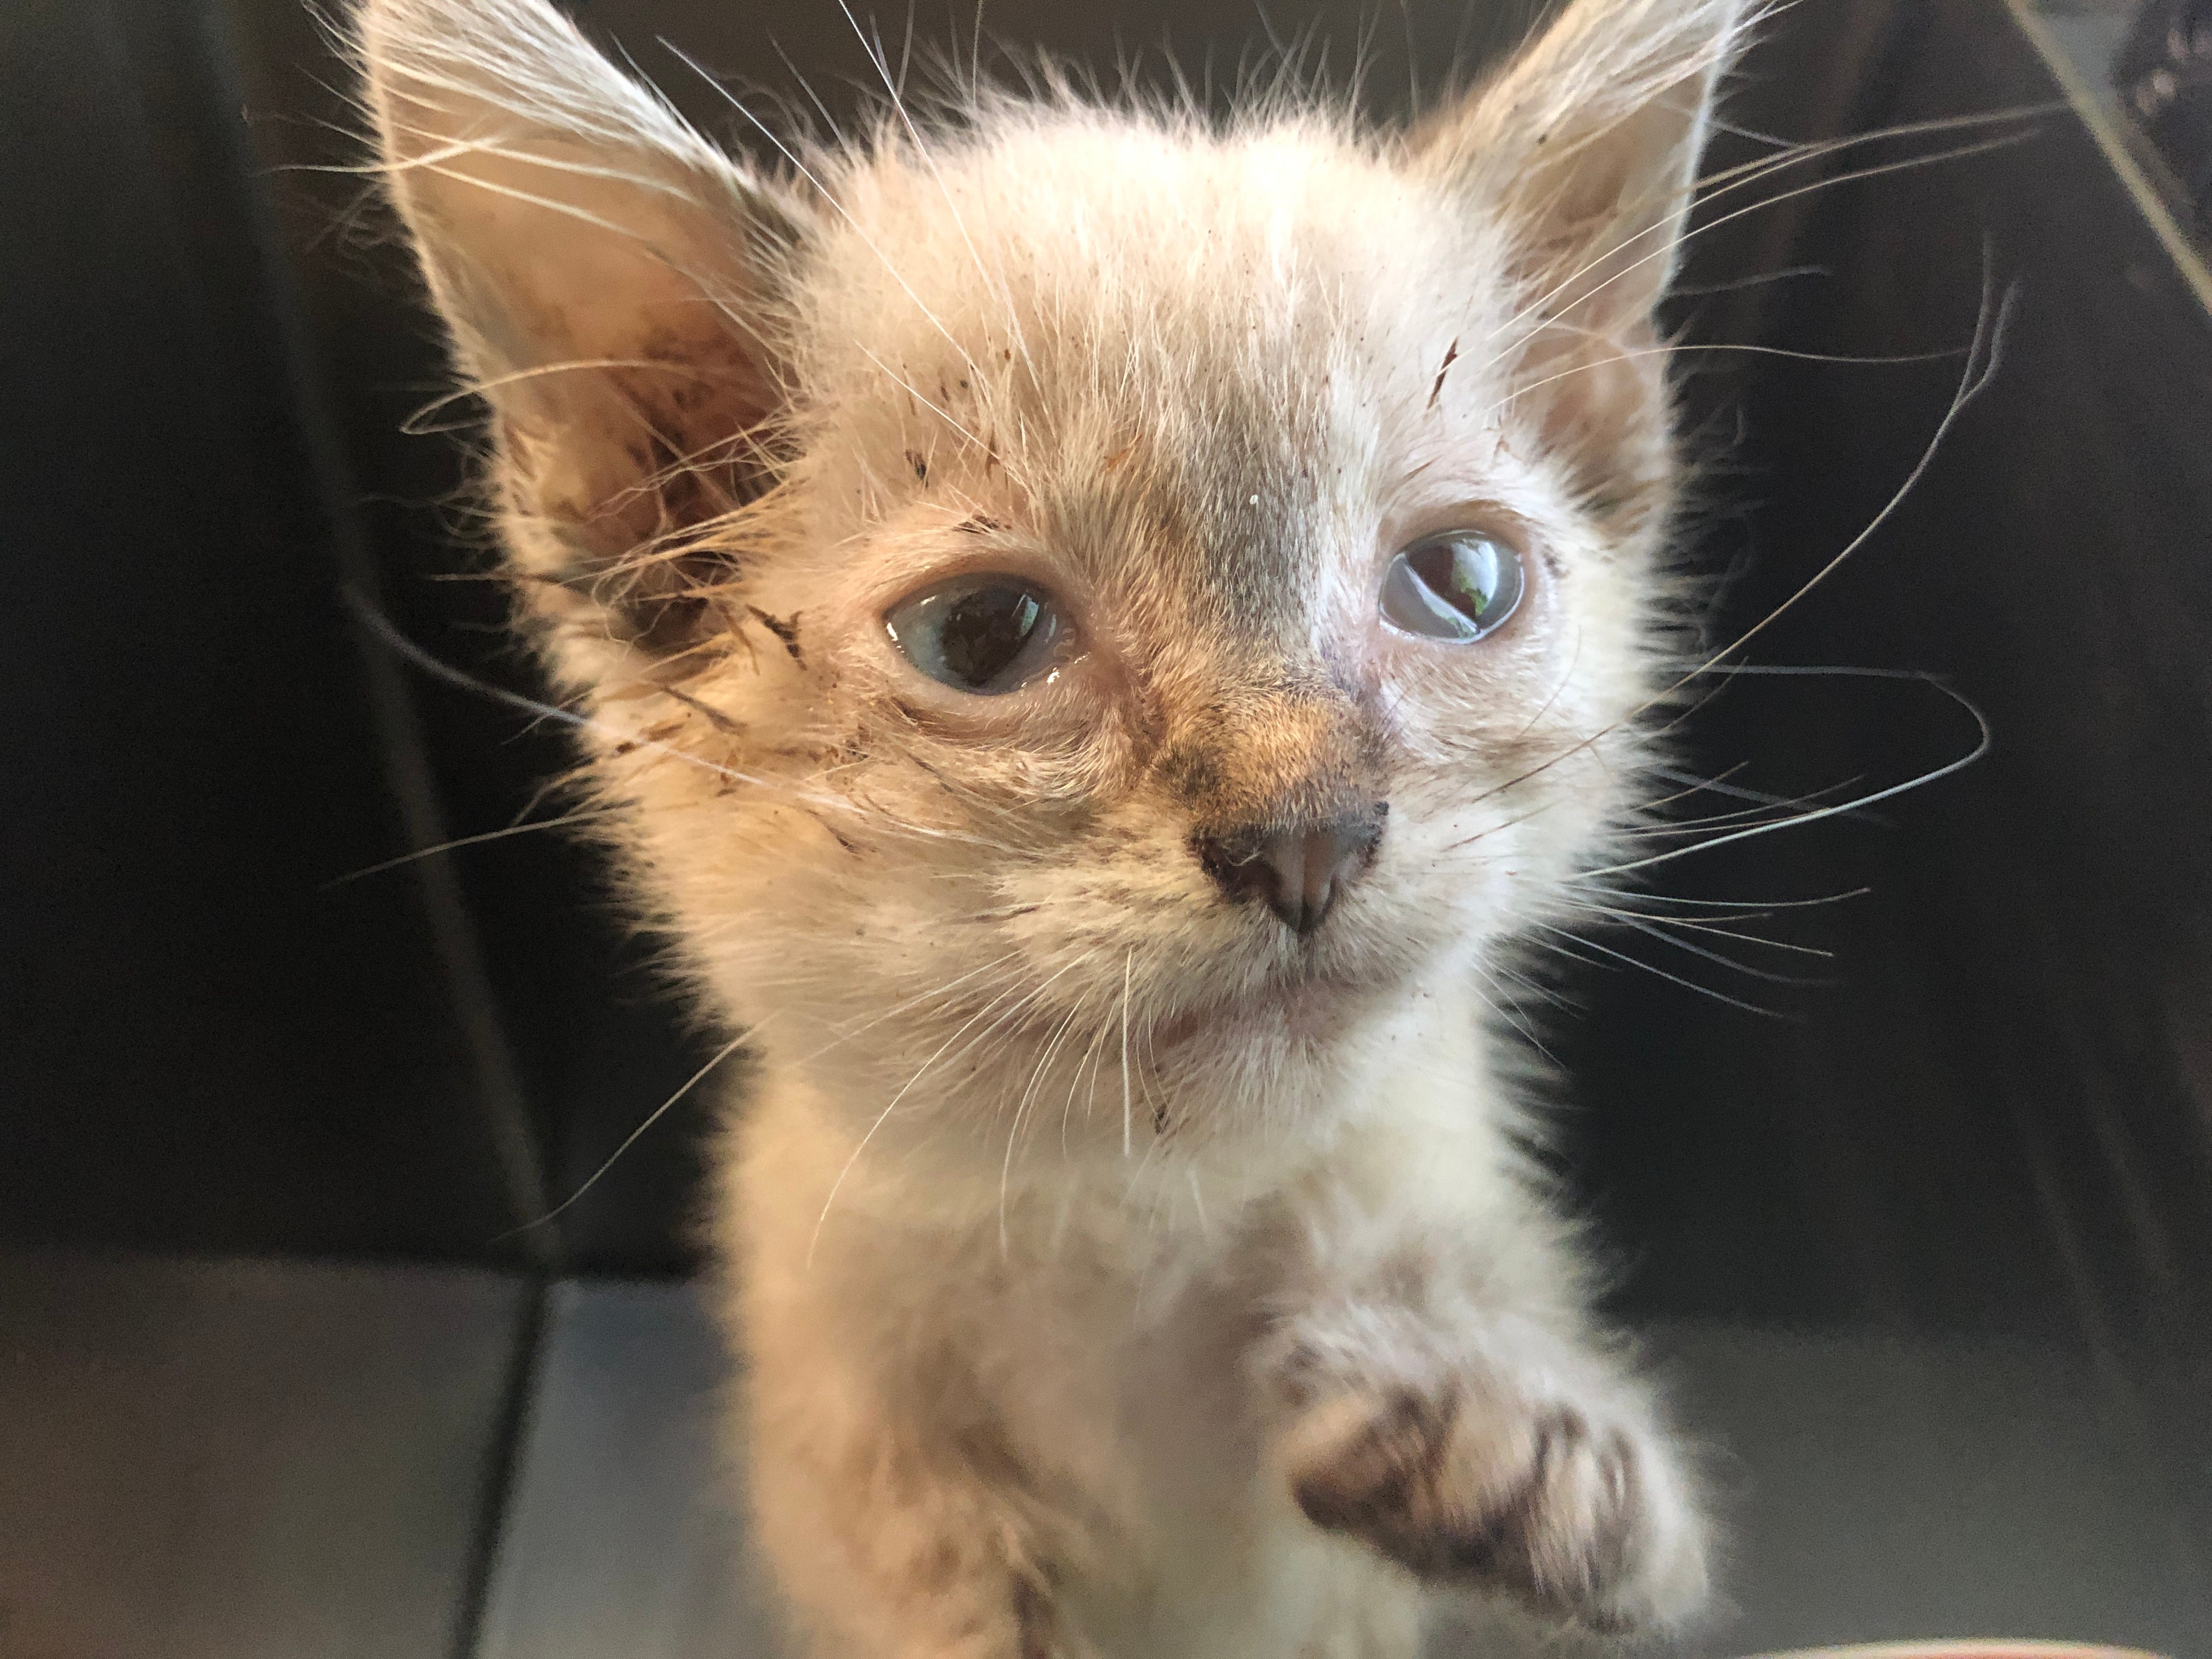 ARL rescues at least 36 cats and kittens from Des Moines home